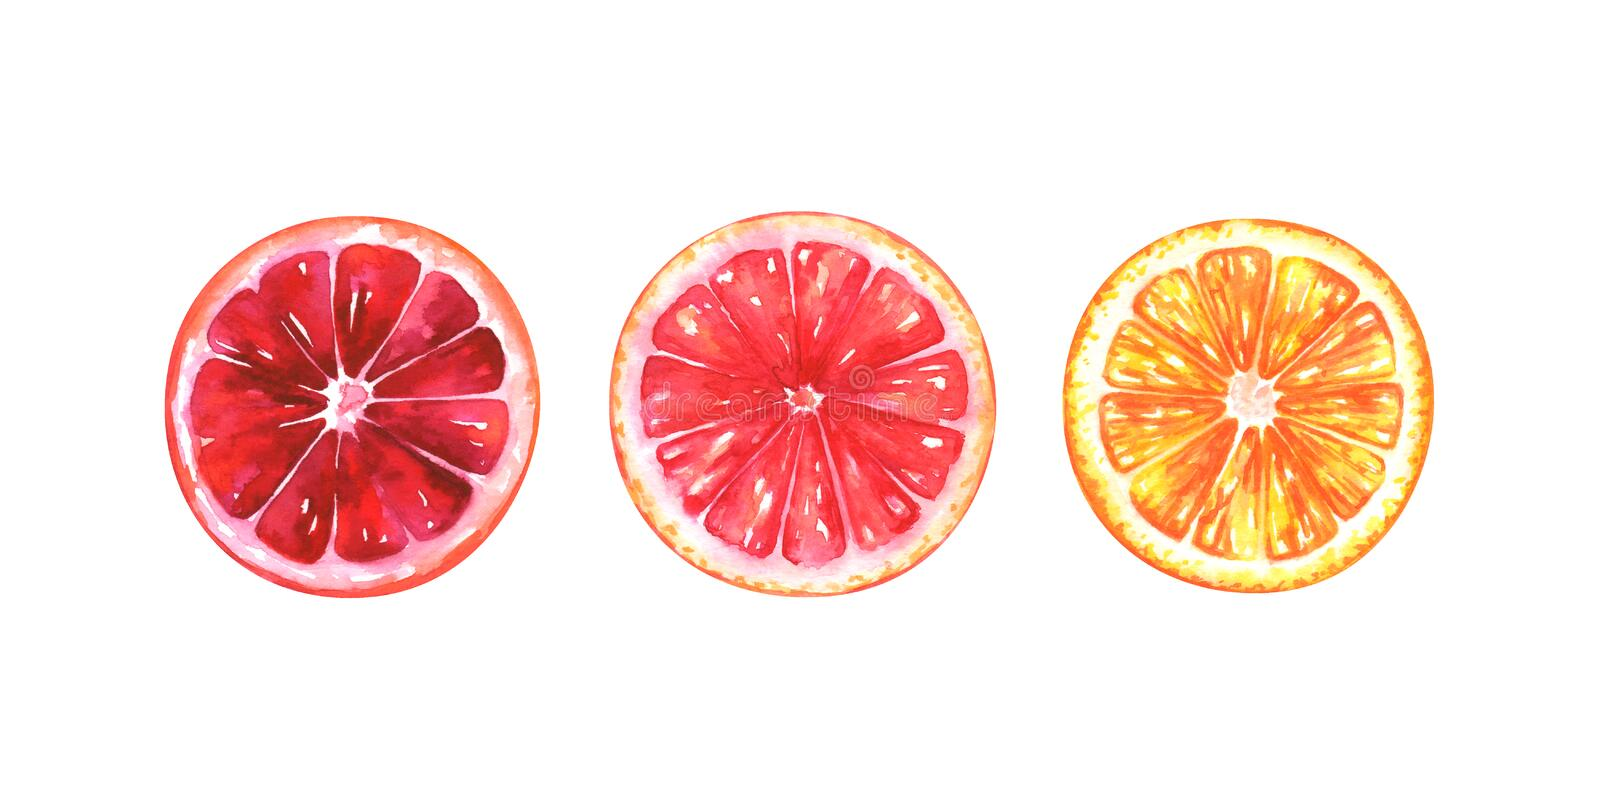 Hand painted watercolor illustration of slices of different oranges. Isolated on white background vector illustration